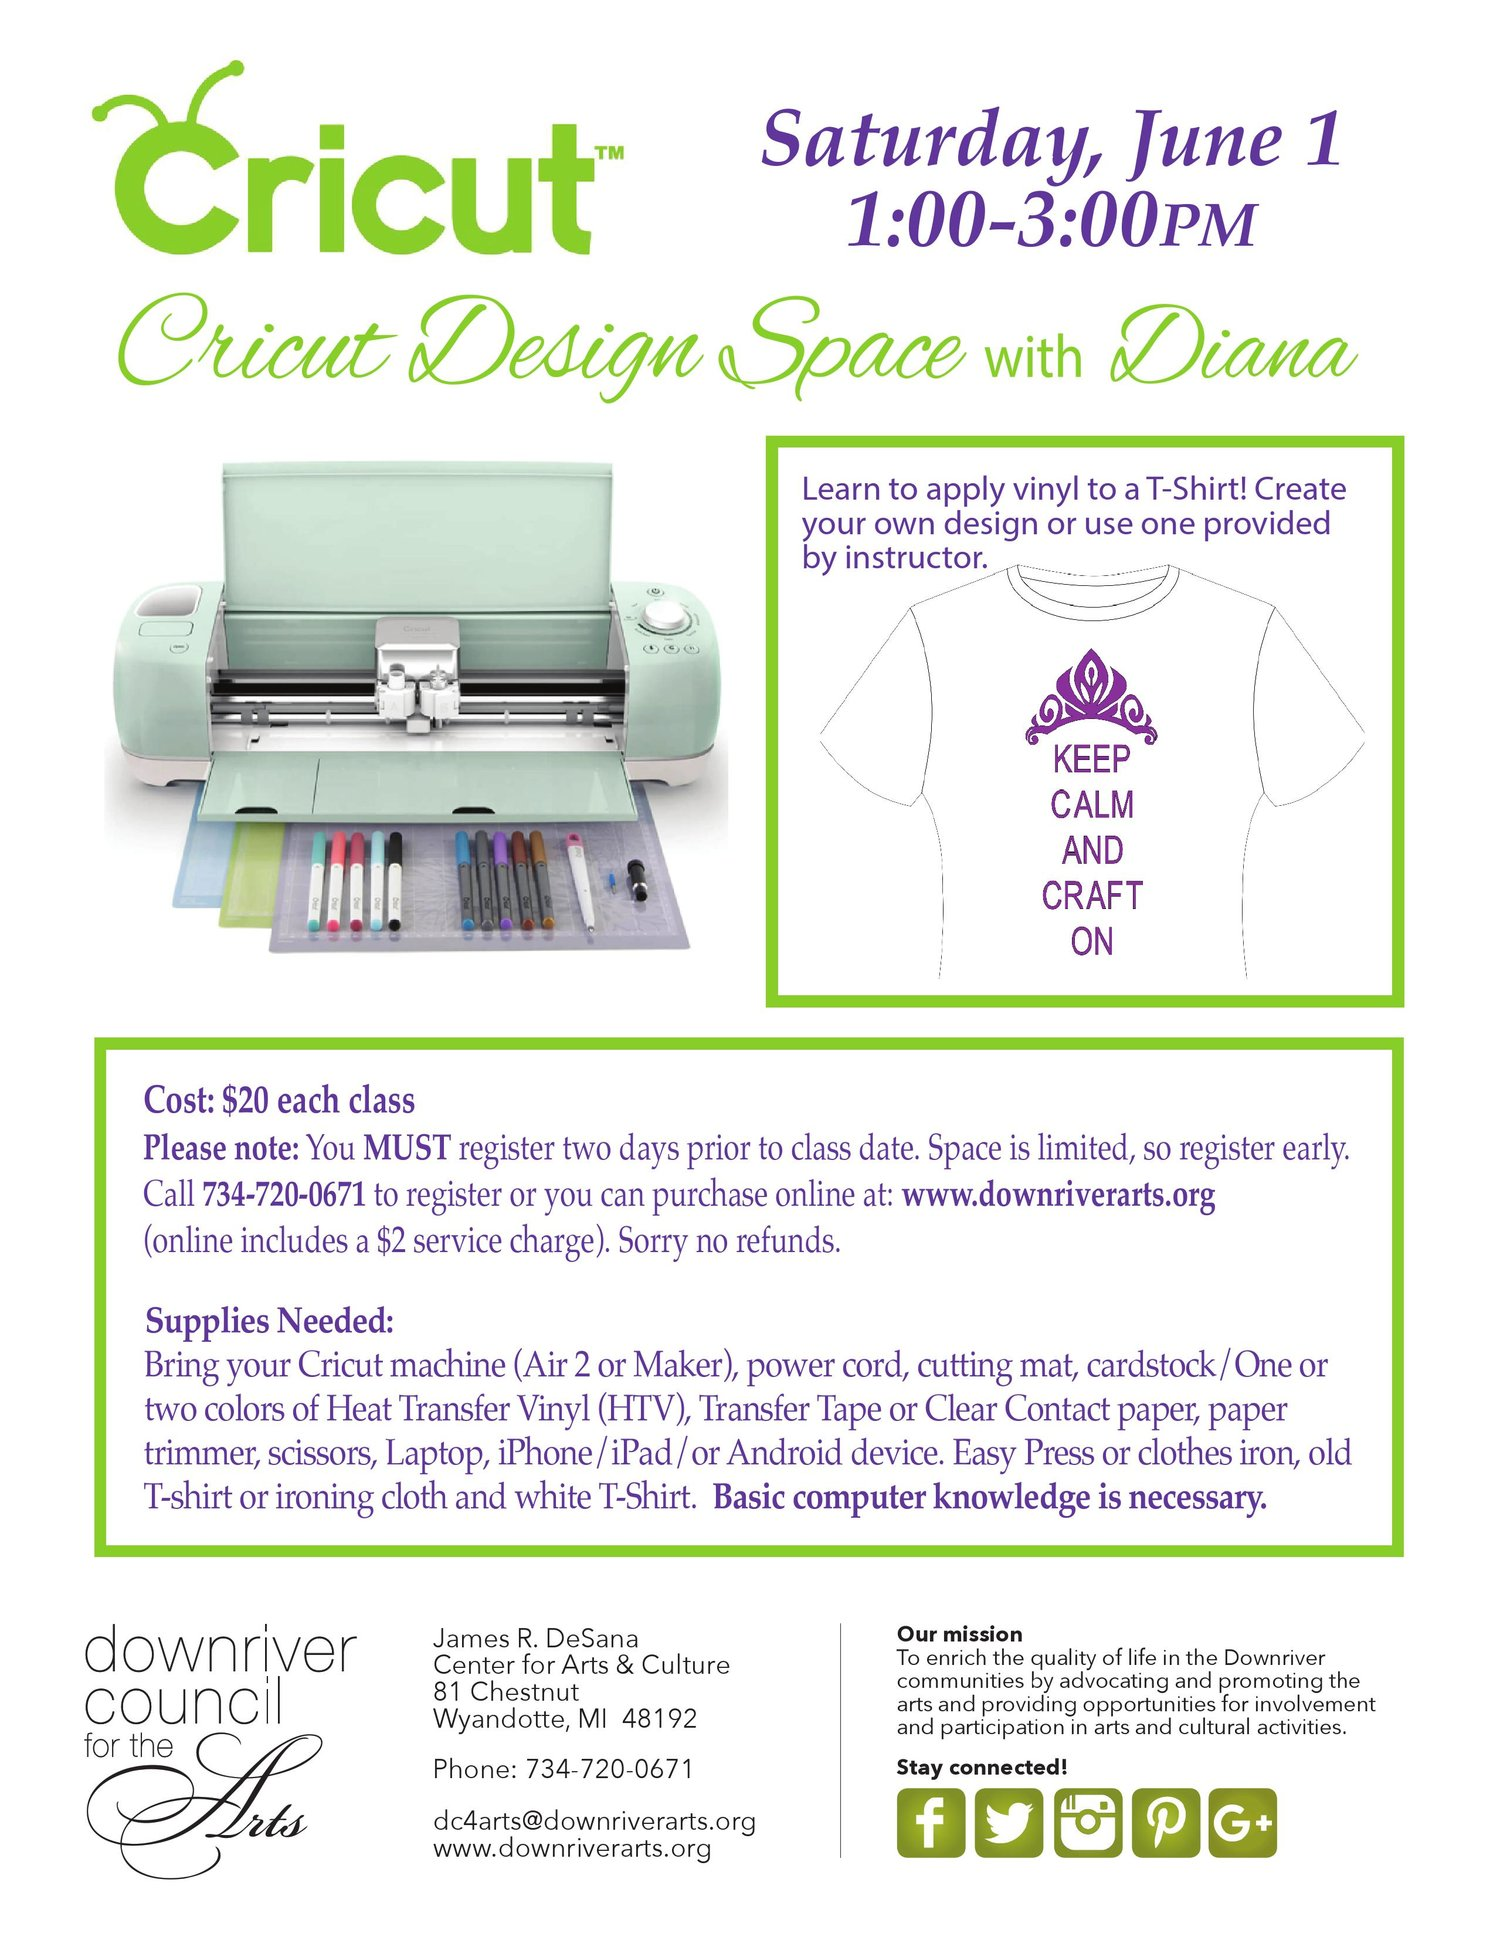 Cricut Design Space T-Shirt -06/01/19 — Downriver Council